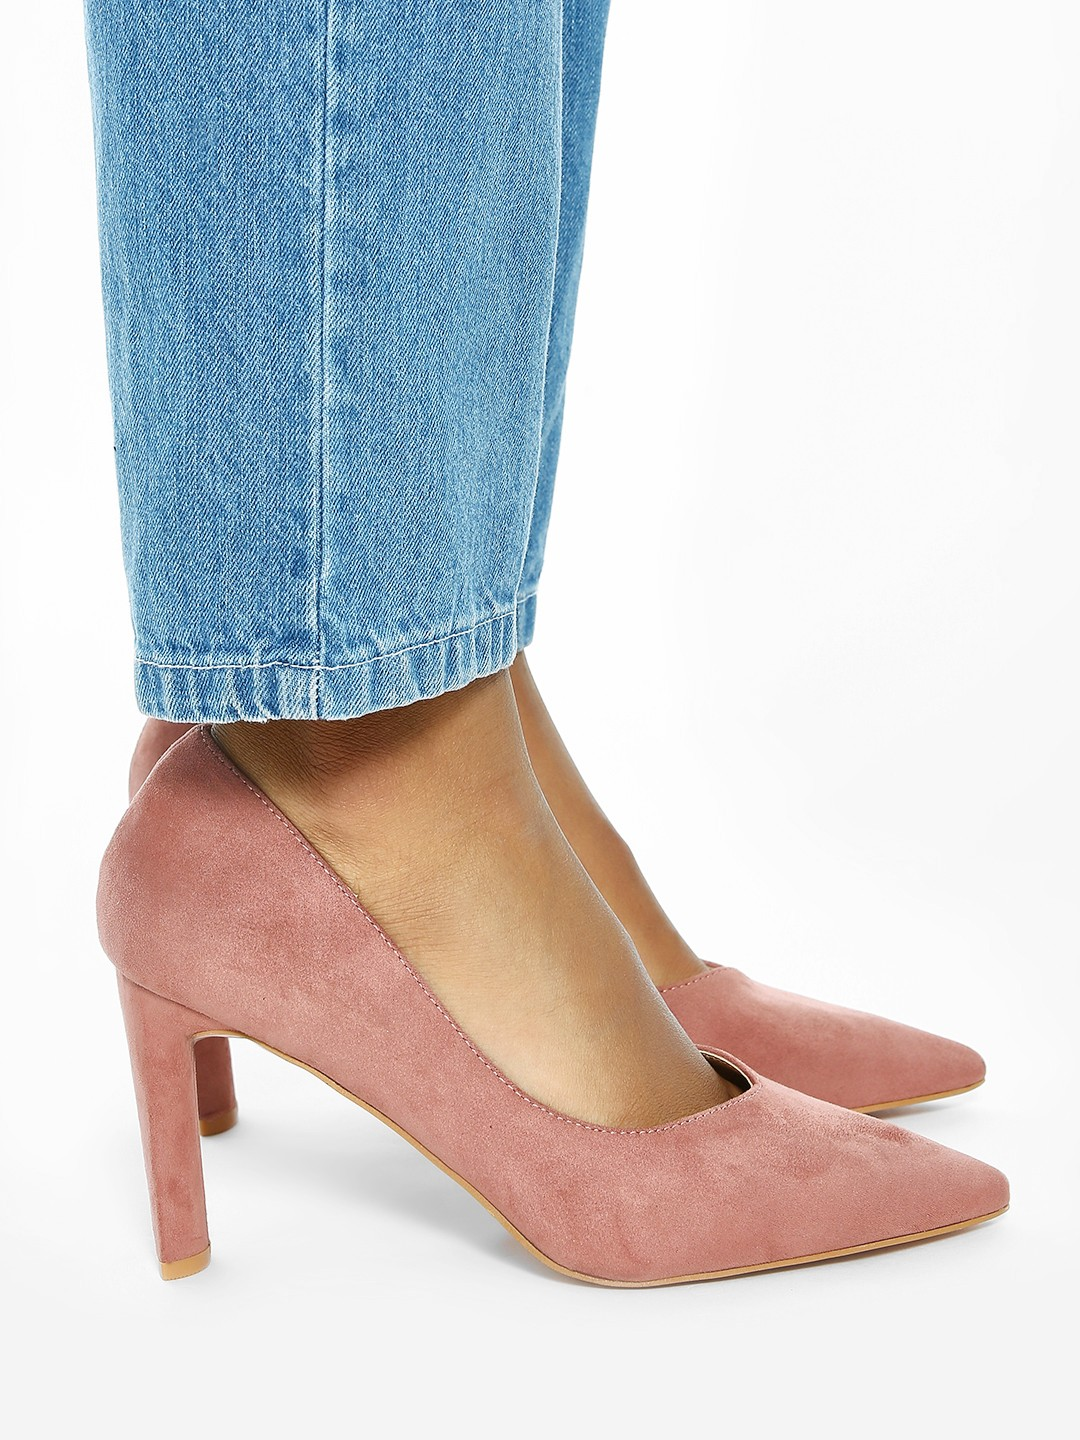 Intoto Pink Basic Suede Pumps 1